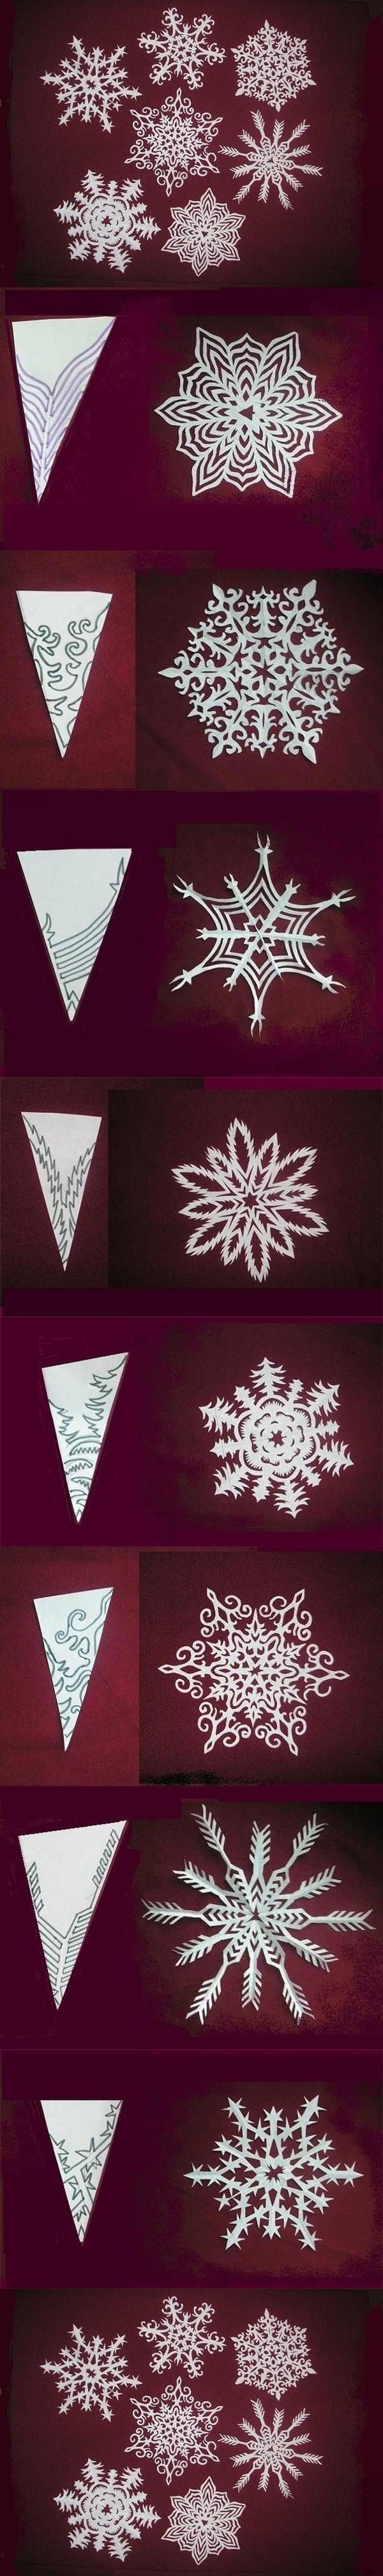 Every year I try to figure out how I made snowflakes as a child and every year they come out odd . Finally a tutorial, lol.: